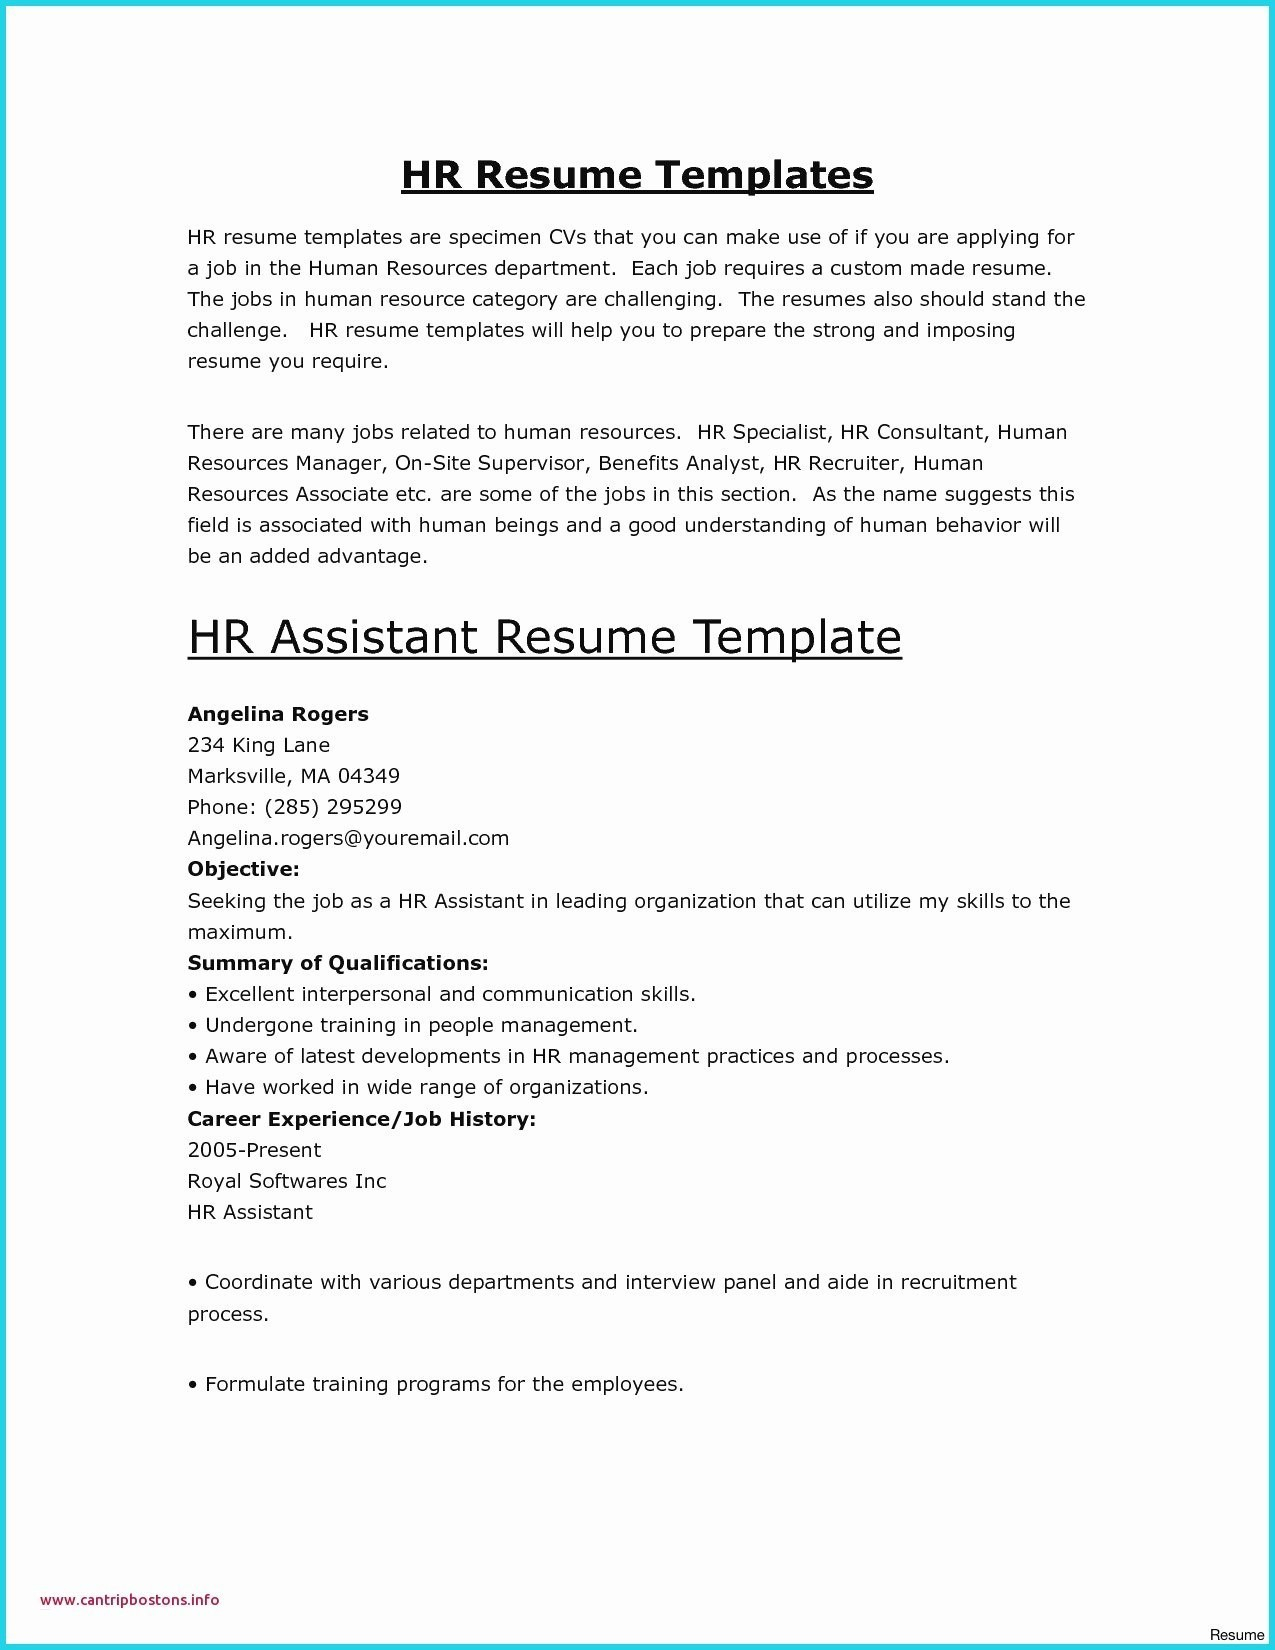 Responsive Resume Template Free - 25 New Federal Government Resume